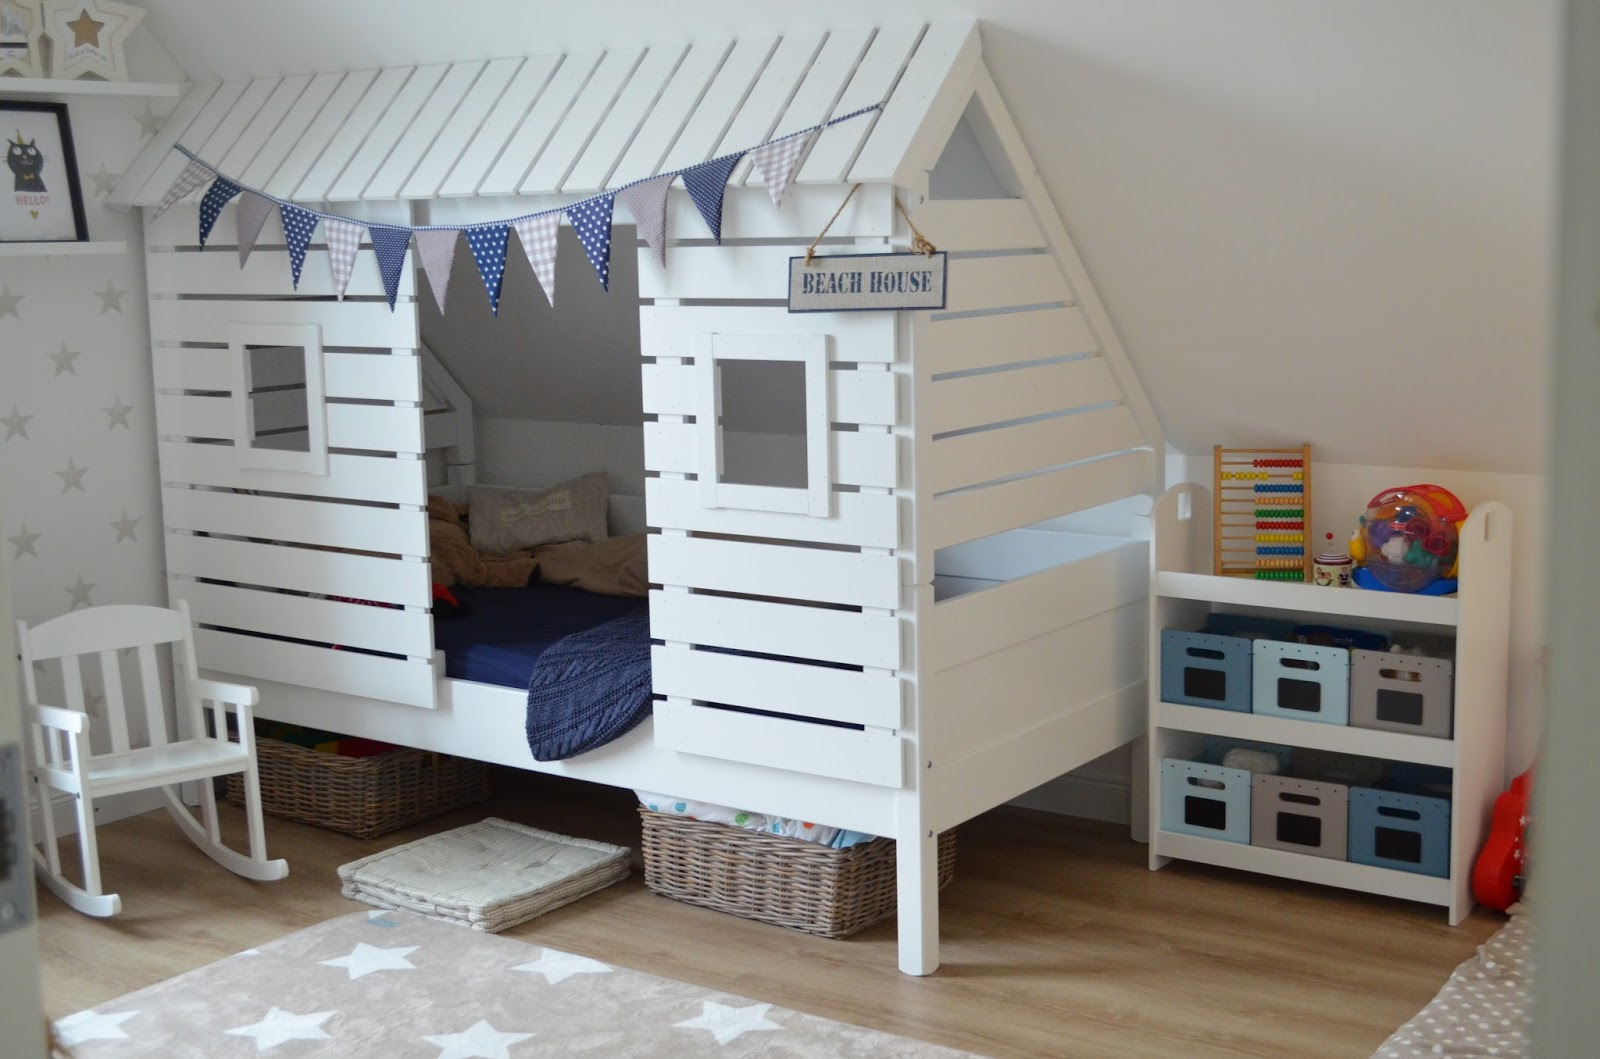 deko hus kinderzimmer die zweite. Black Bedroom Furniture Sets. Home Design Ideas